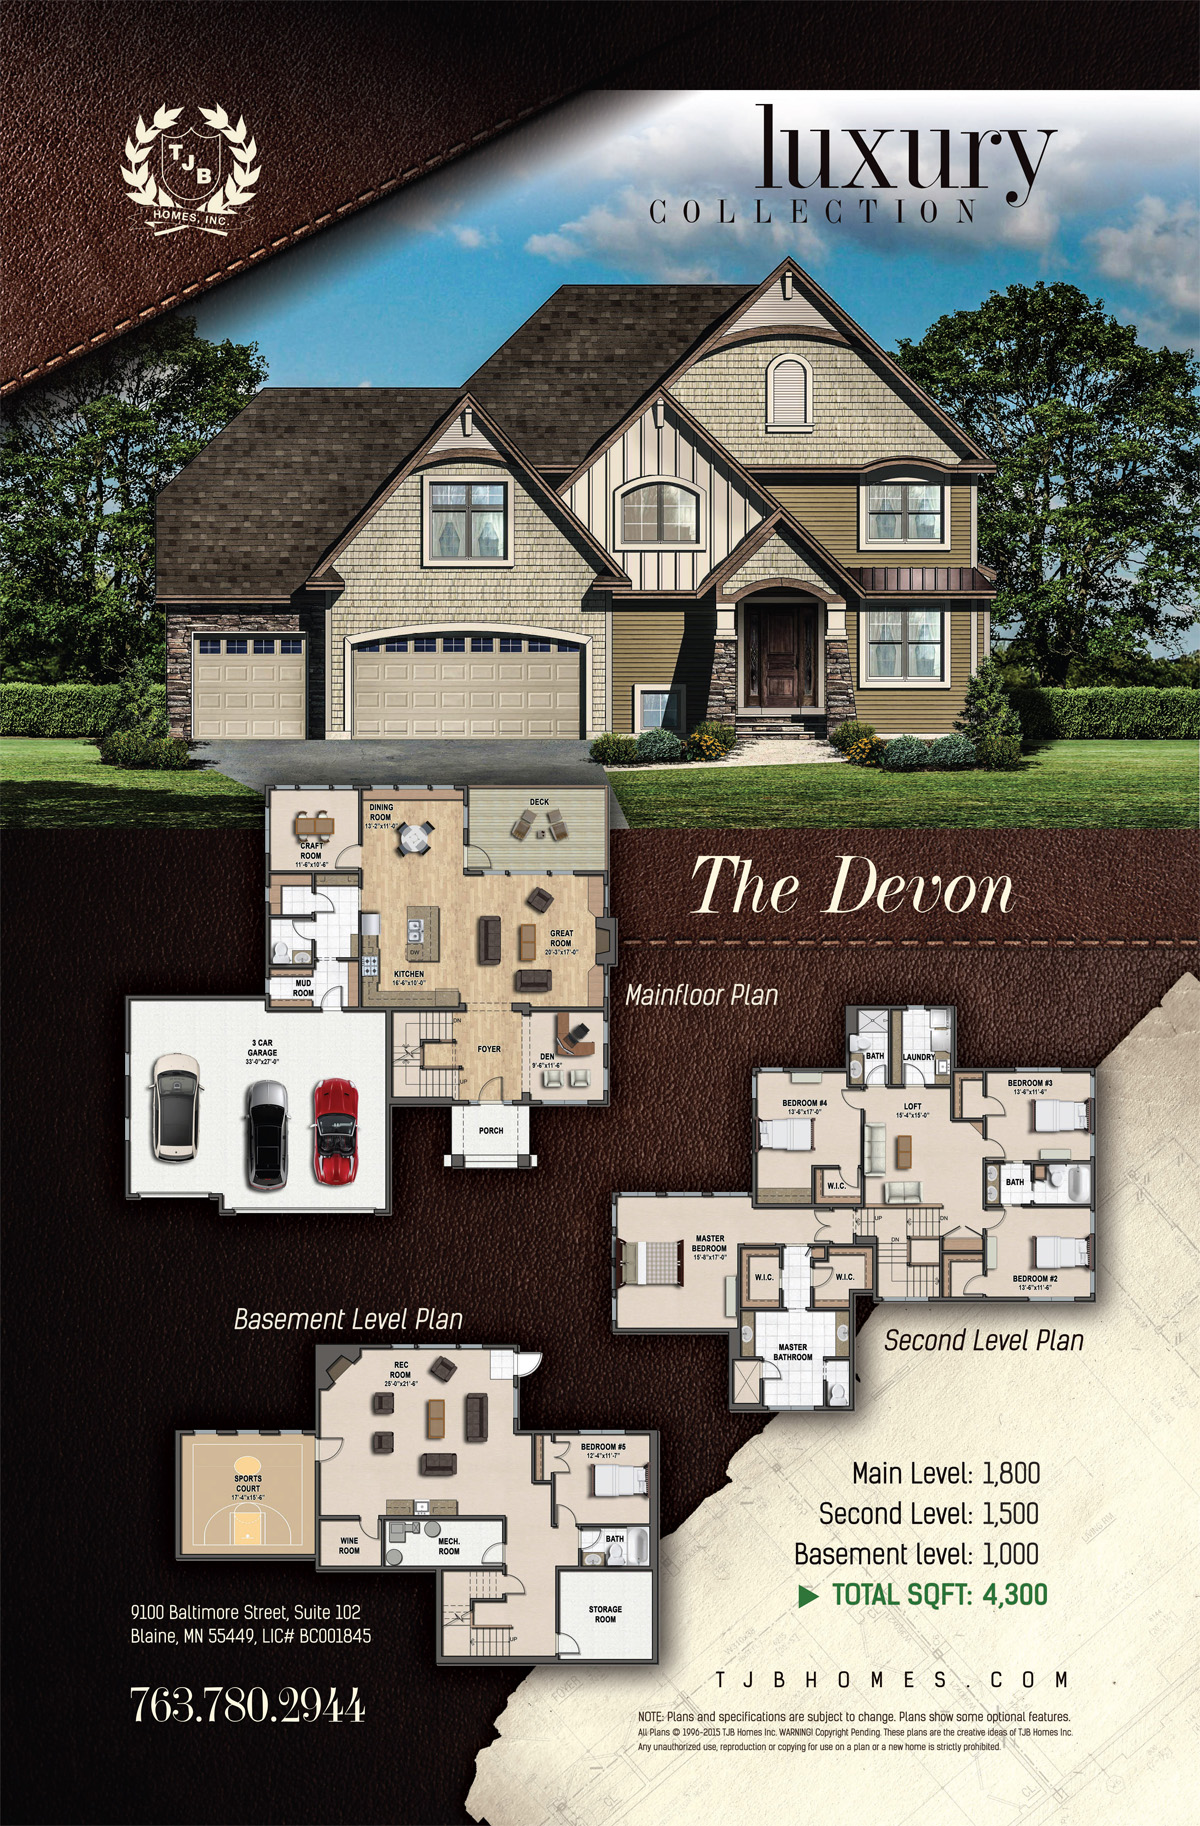 Luxury Collection Home Plans - The Devon